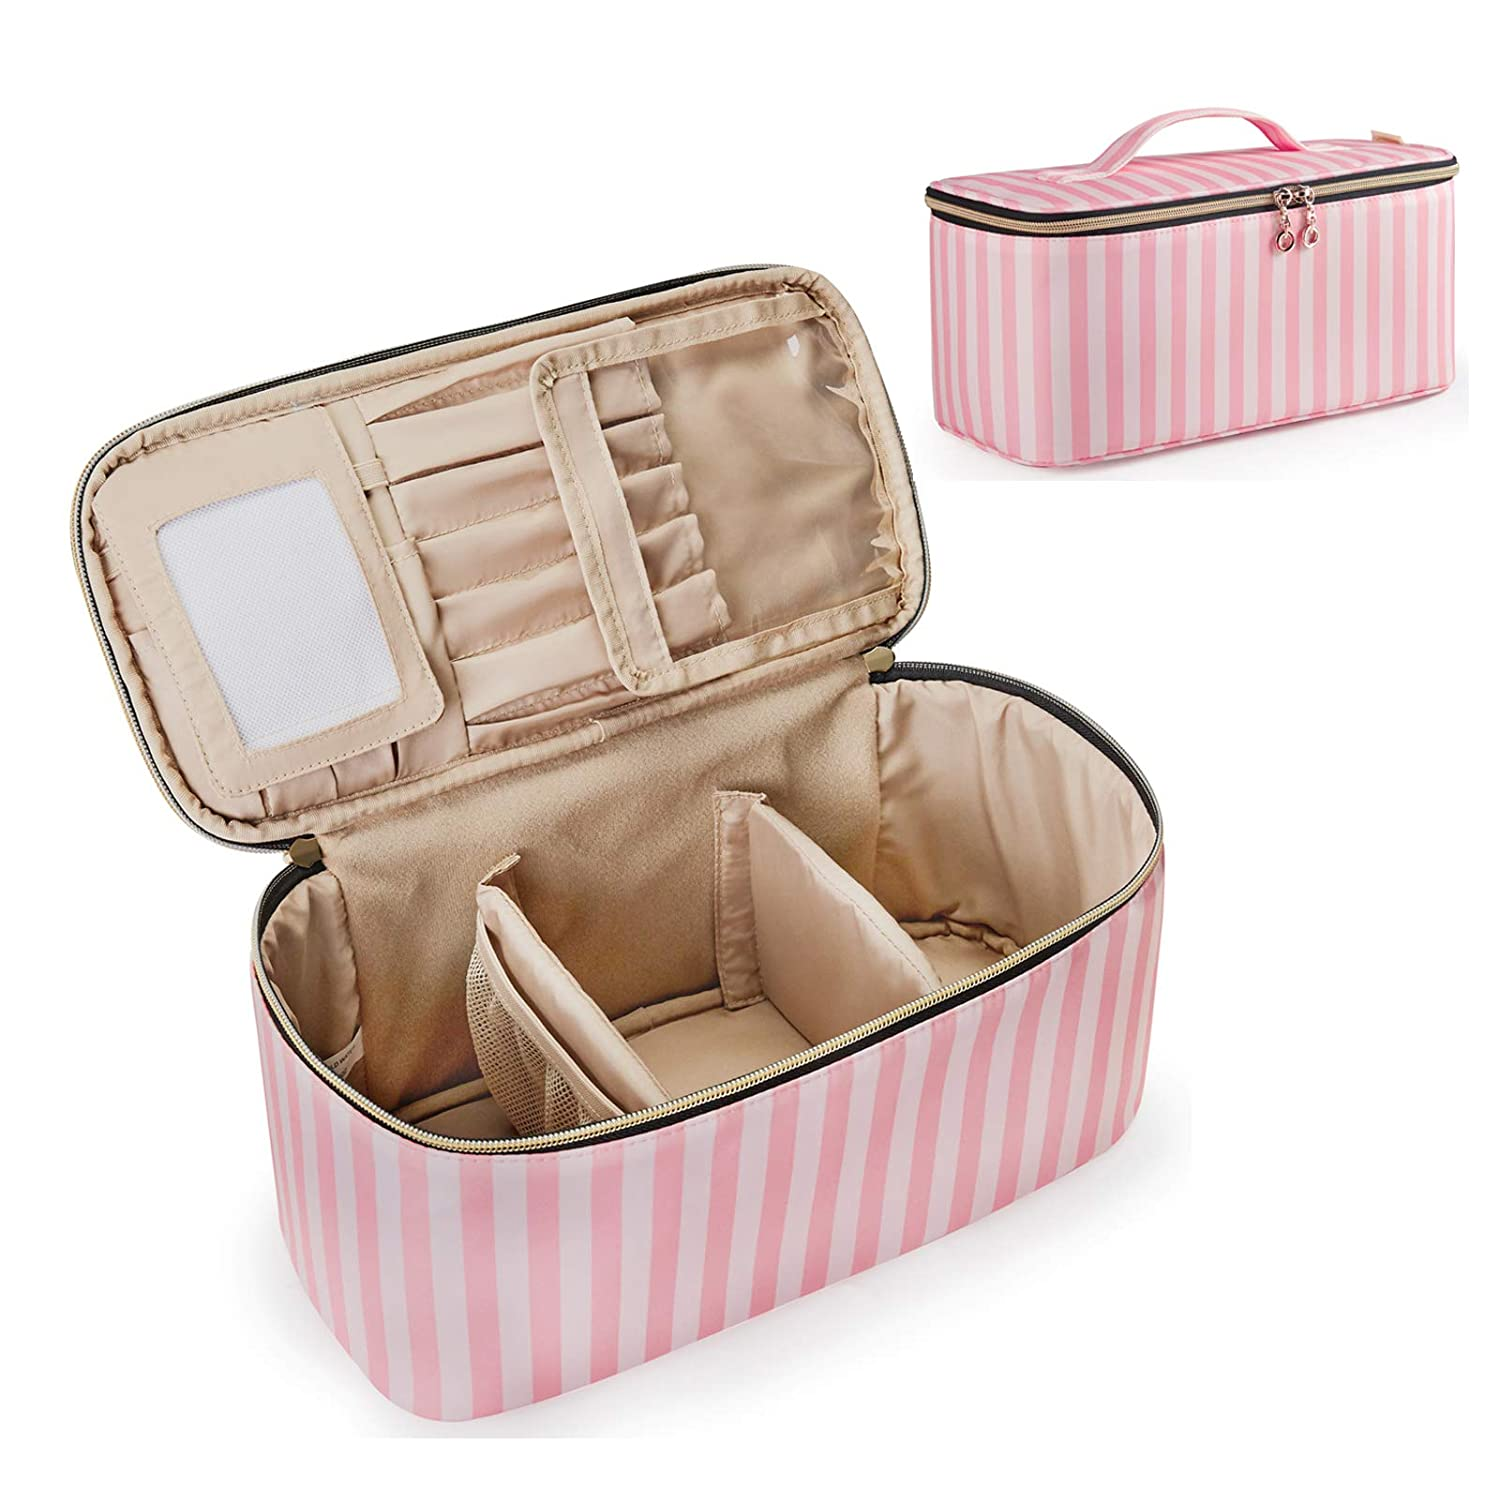 Bagsmart large cosmetic bag white and pink stripes